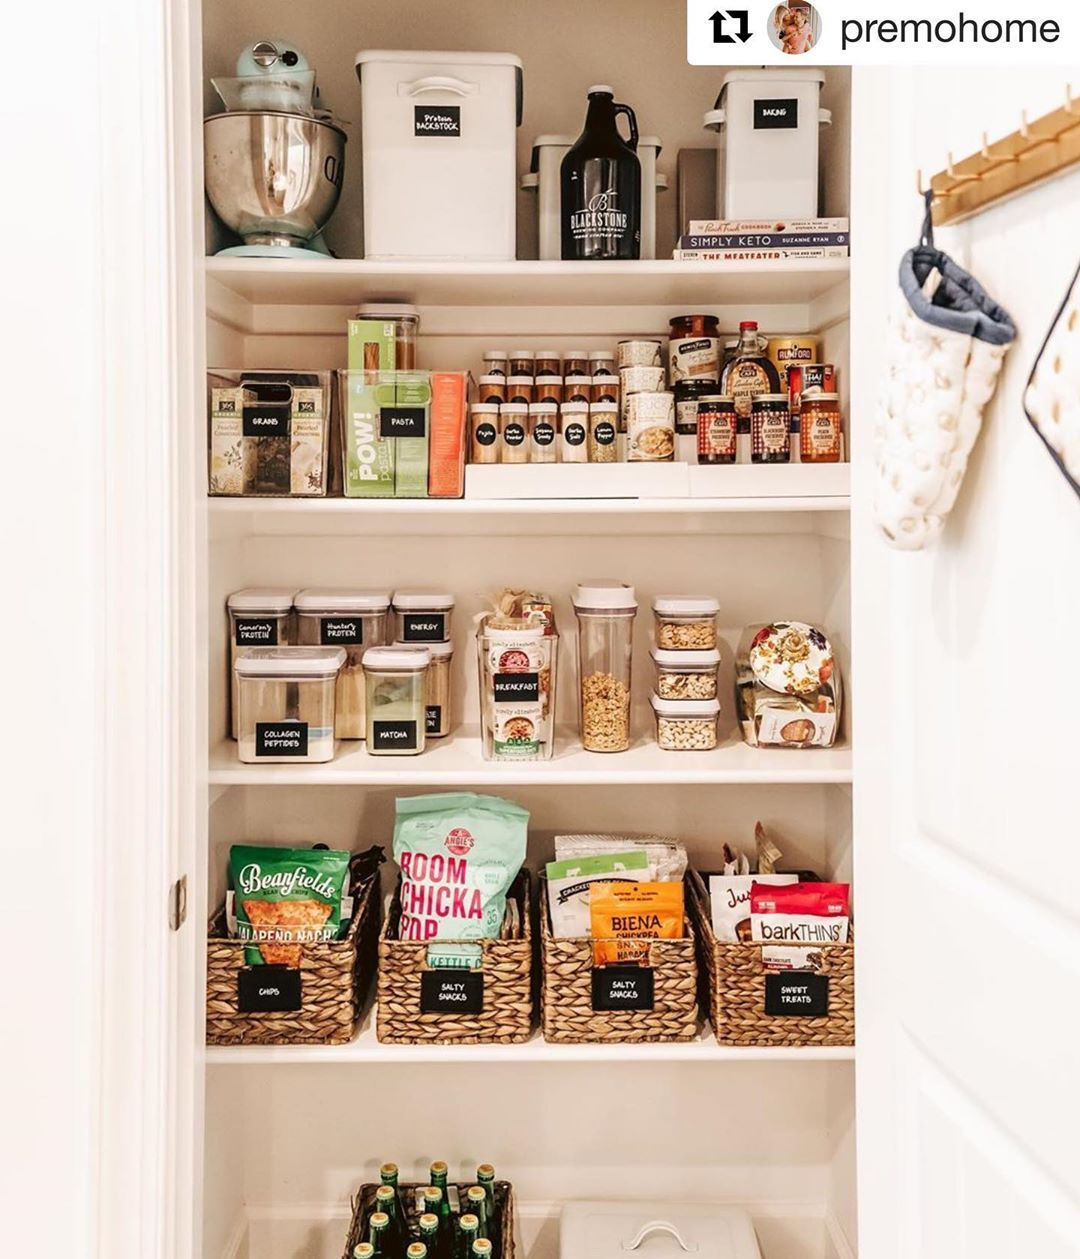 First sneak peek of the before and after pantry that we did for @hunterpremo. Blog post coming soon, until then follow @premohome for lots of home updates.